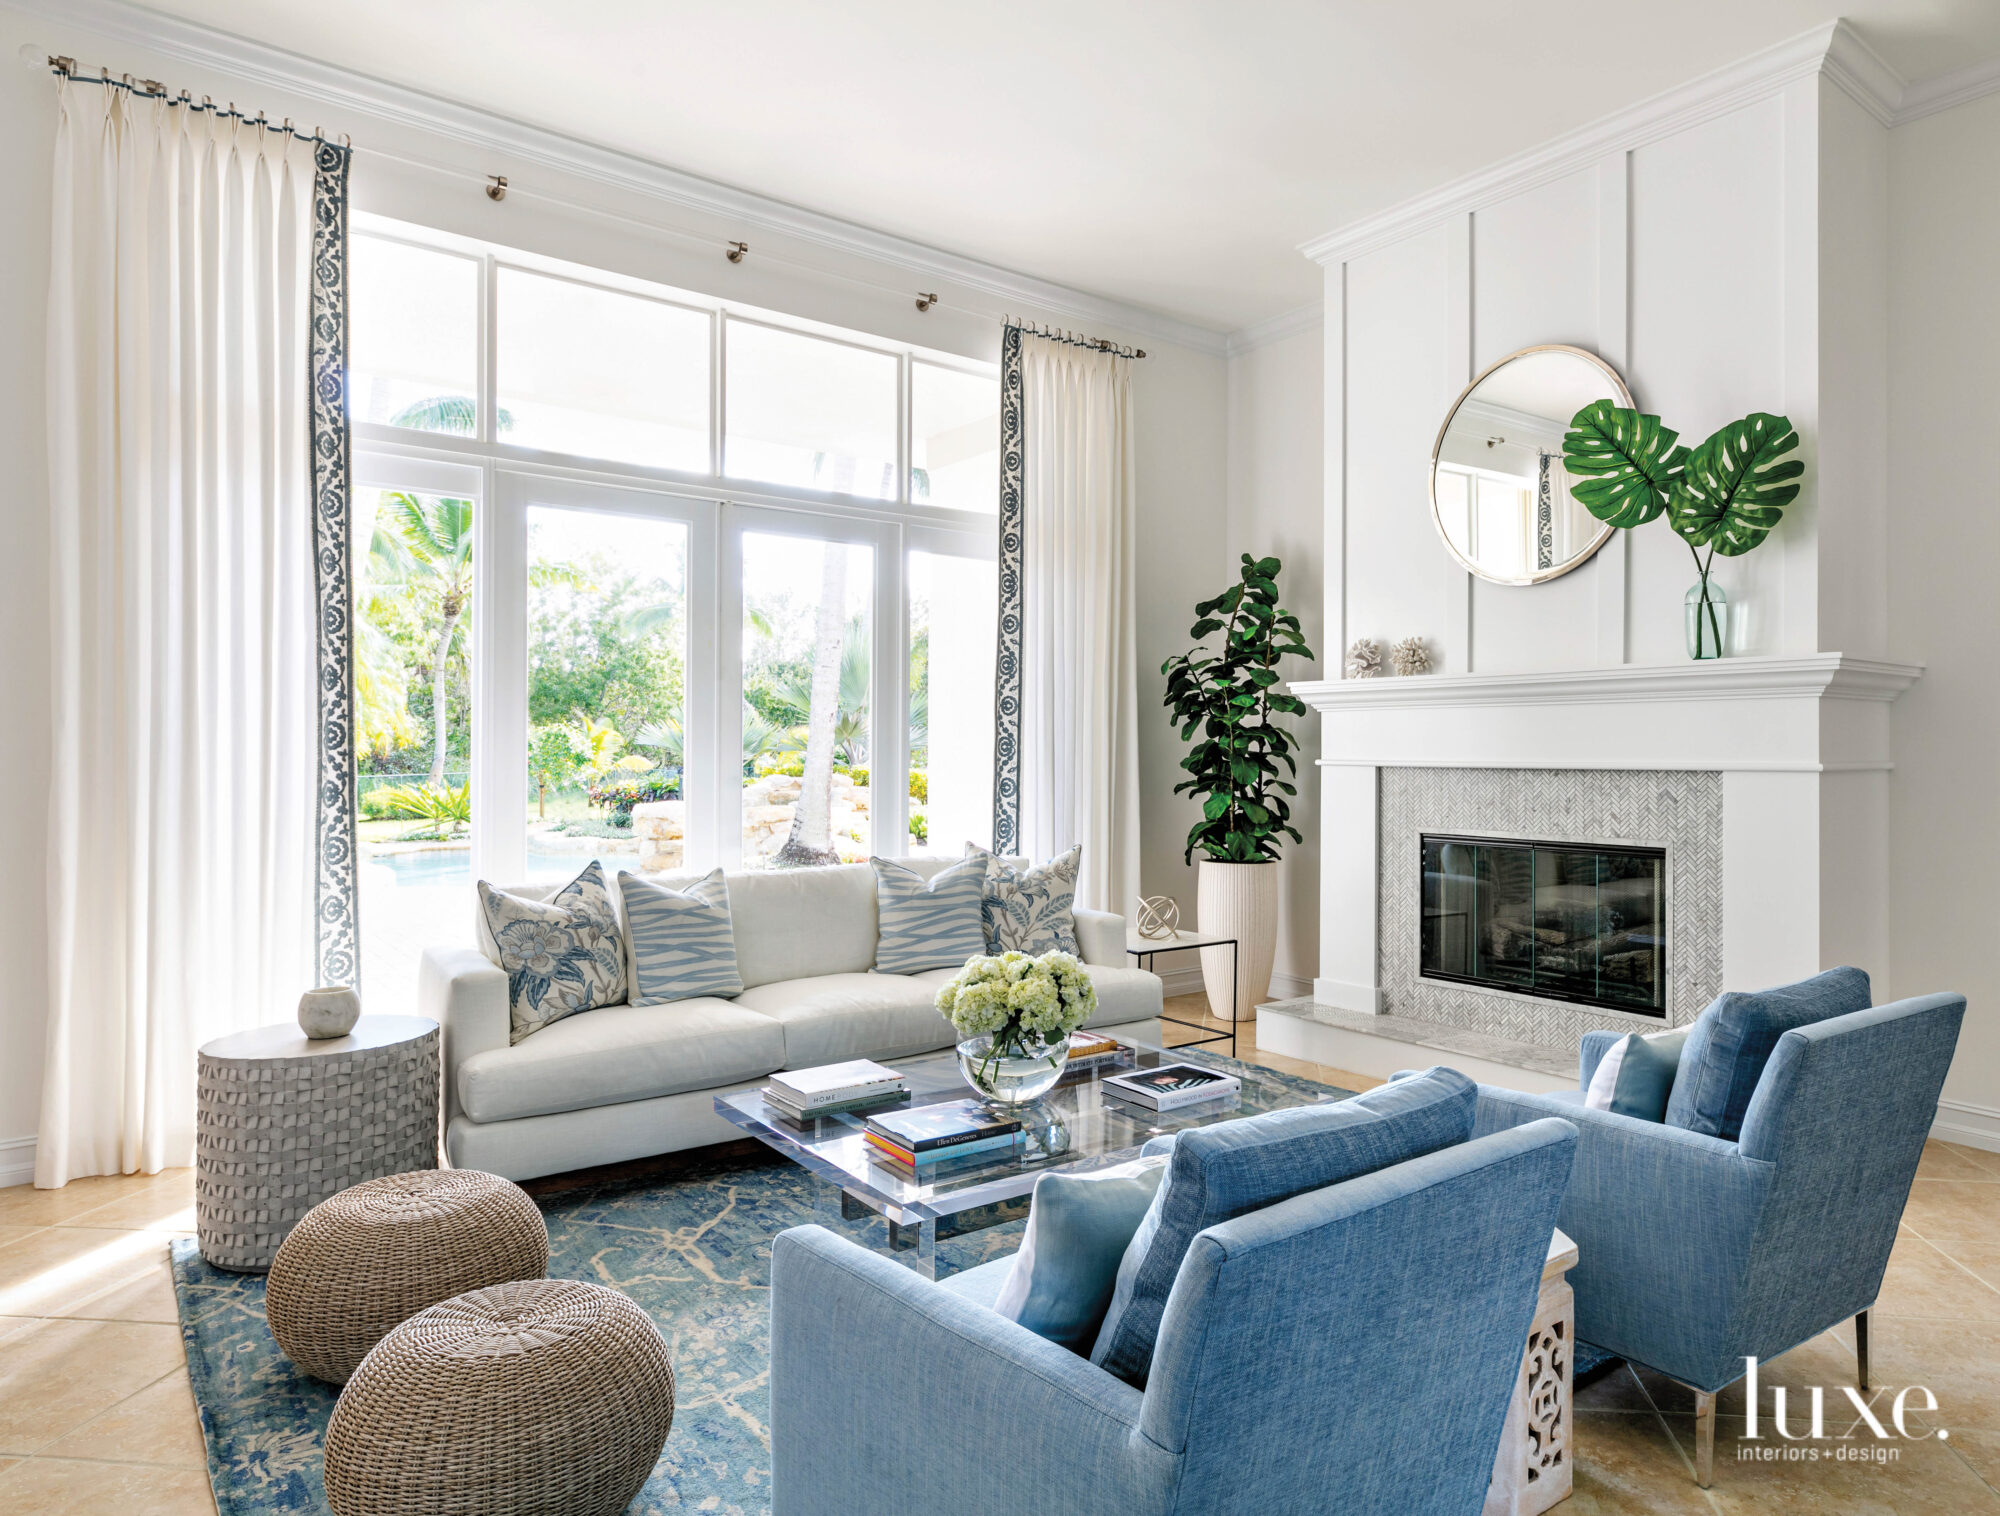 blue and white living room with armchairs, sofa and fireplace